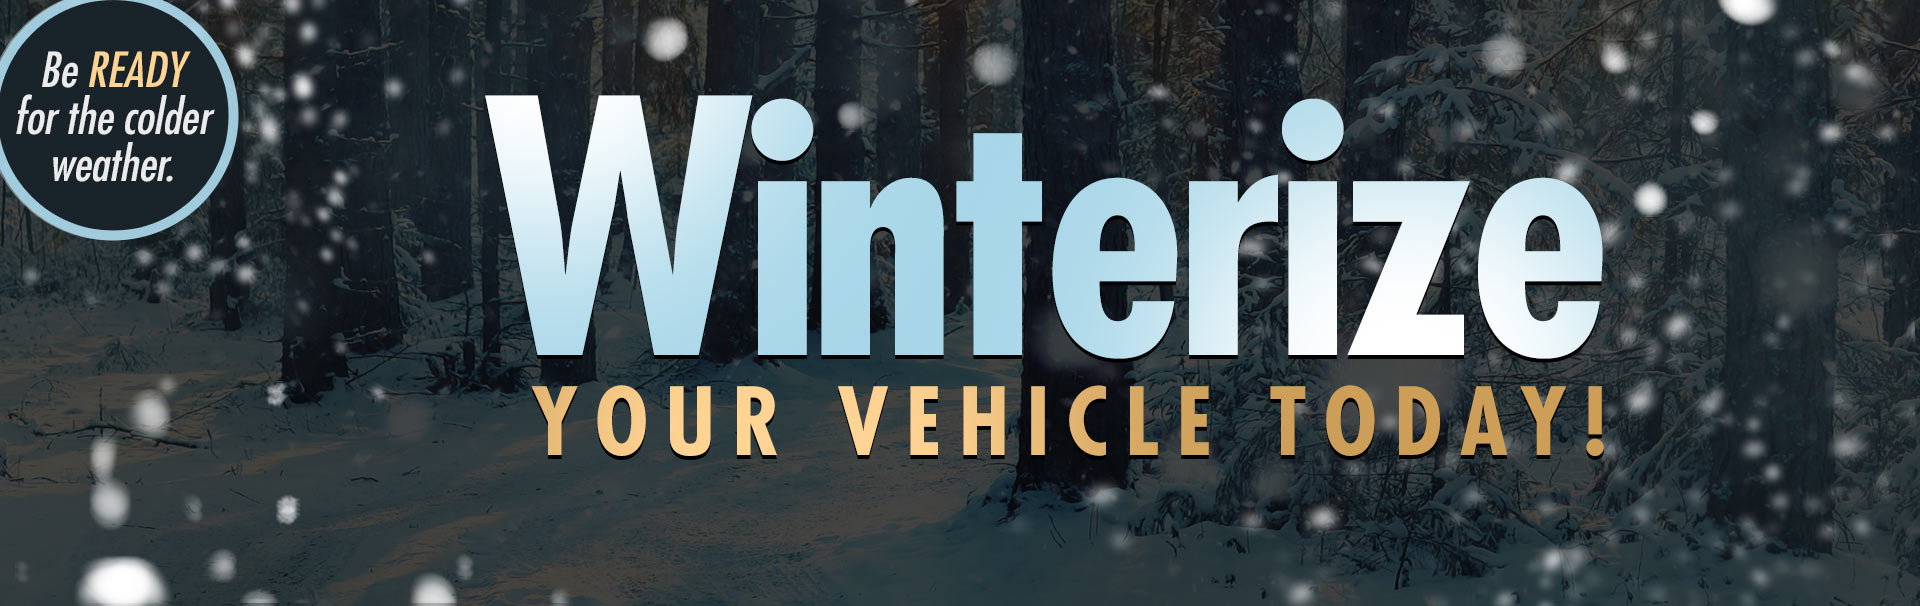 Winterize your vehicle today! Click here to contact us for details.